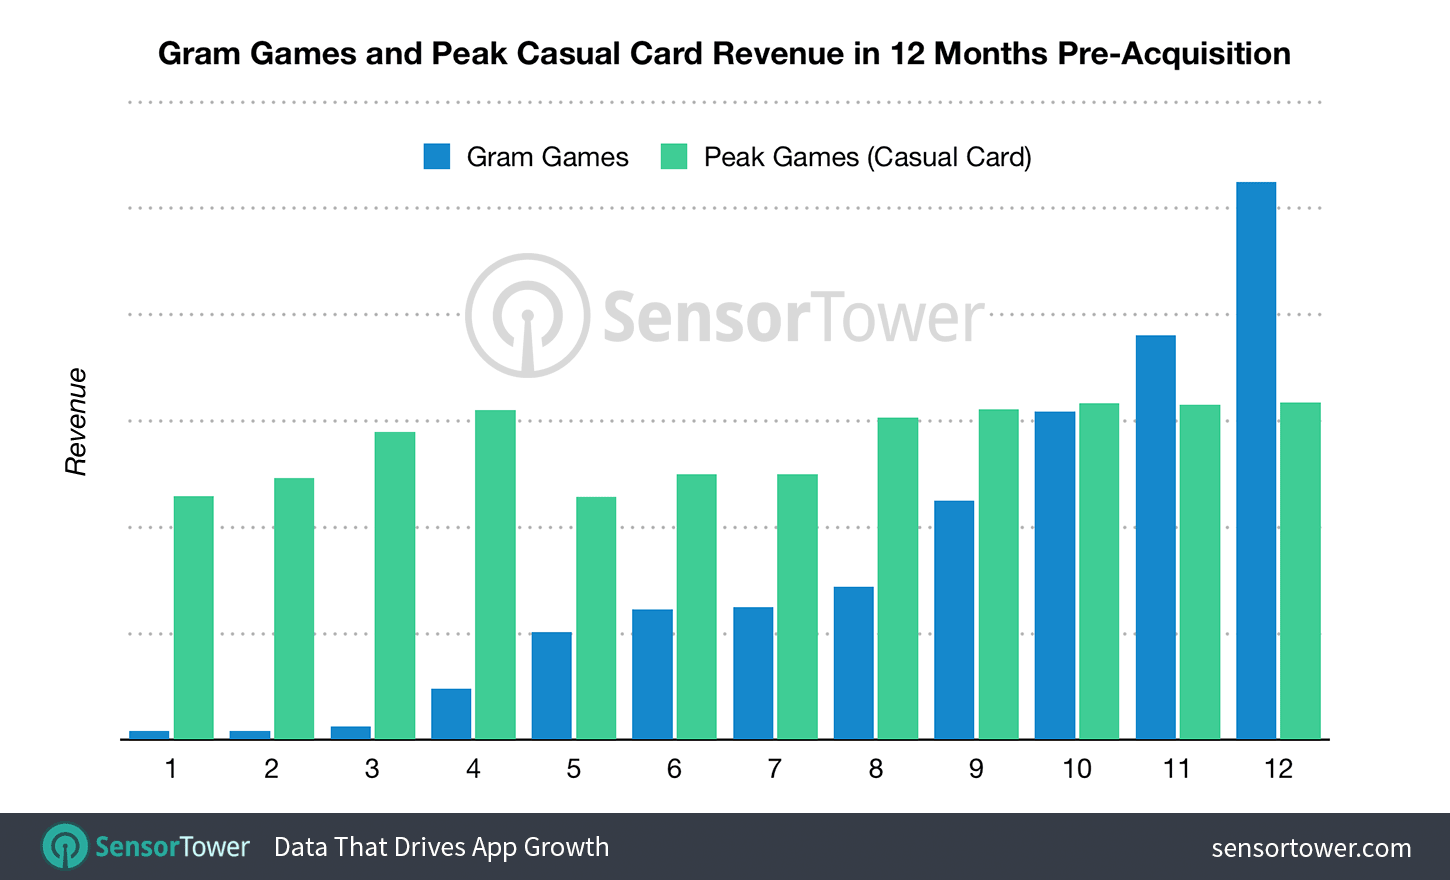 Chart showing the monthly revenue of Gram Games and Peak Games titles for 12 months prior to their acquisition by Zynga  - gram peak pre acquisition revenue - Zynga's Acquisition Strategy Is Reshaping Its Portfolio for Future Growth